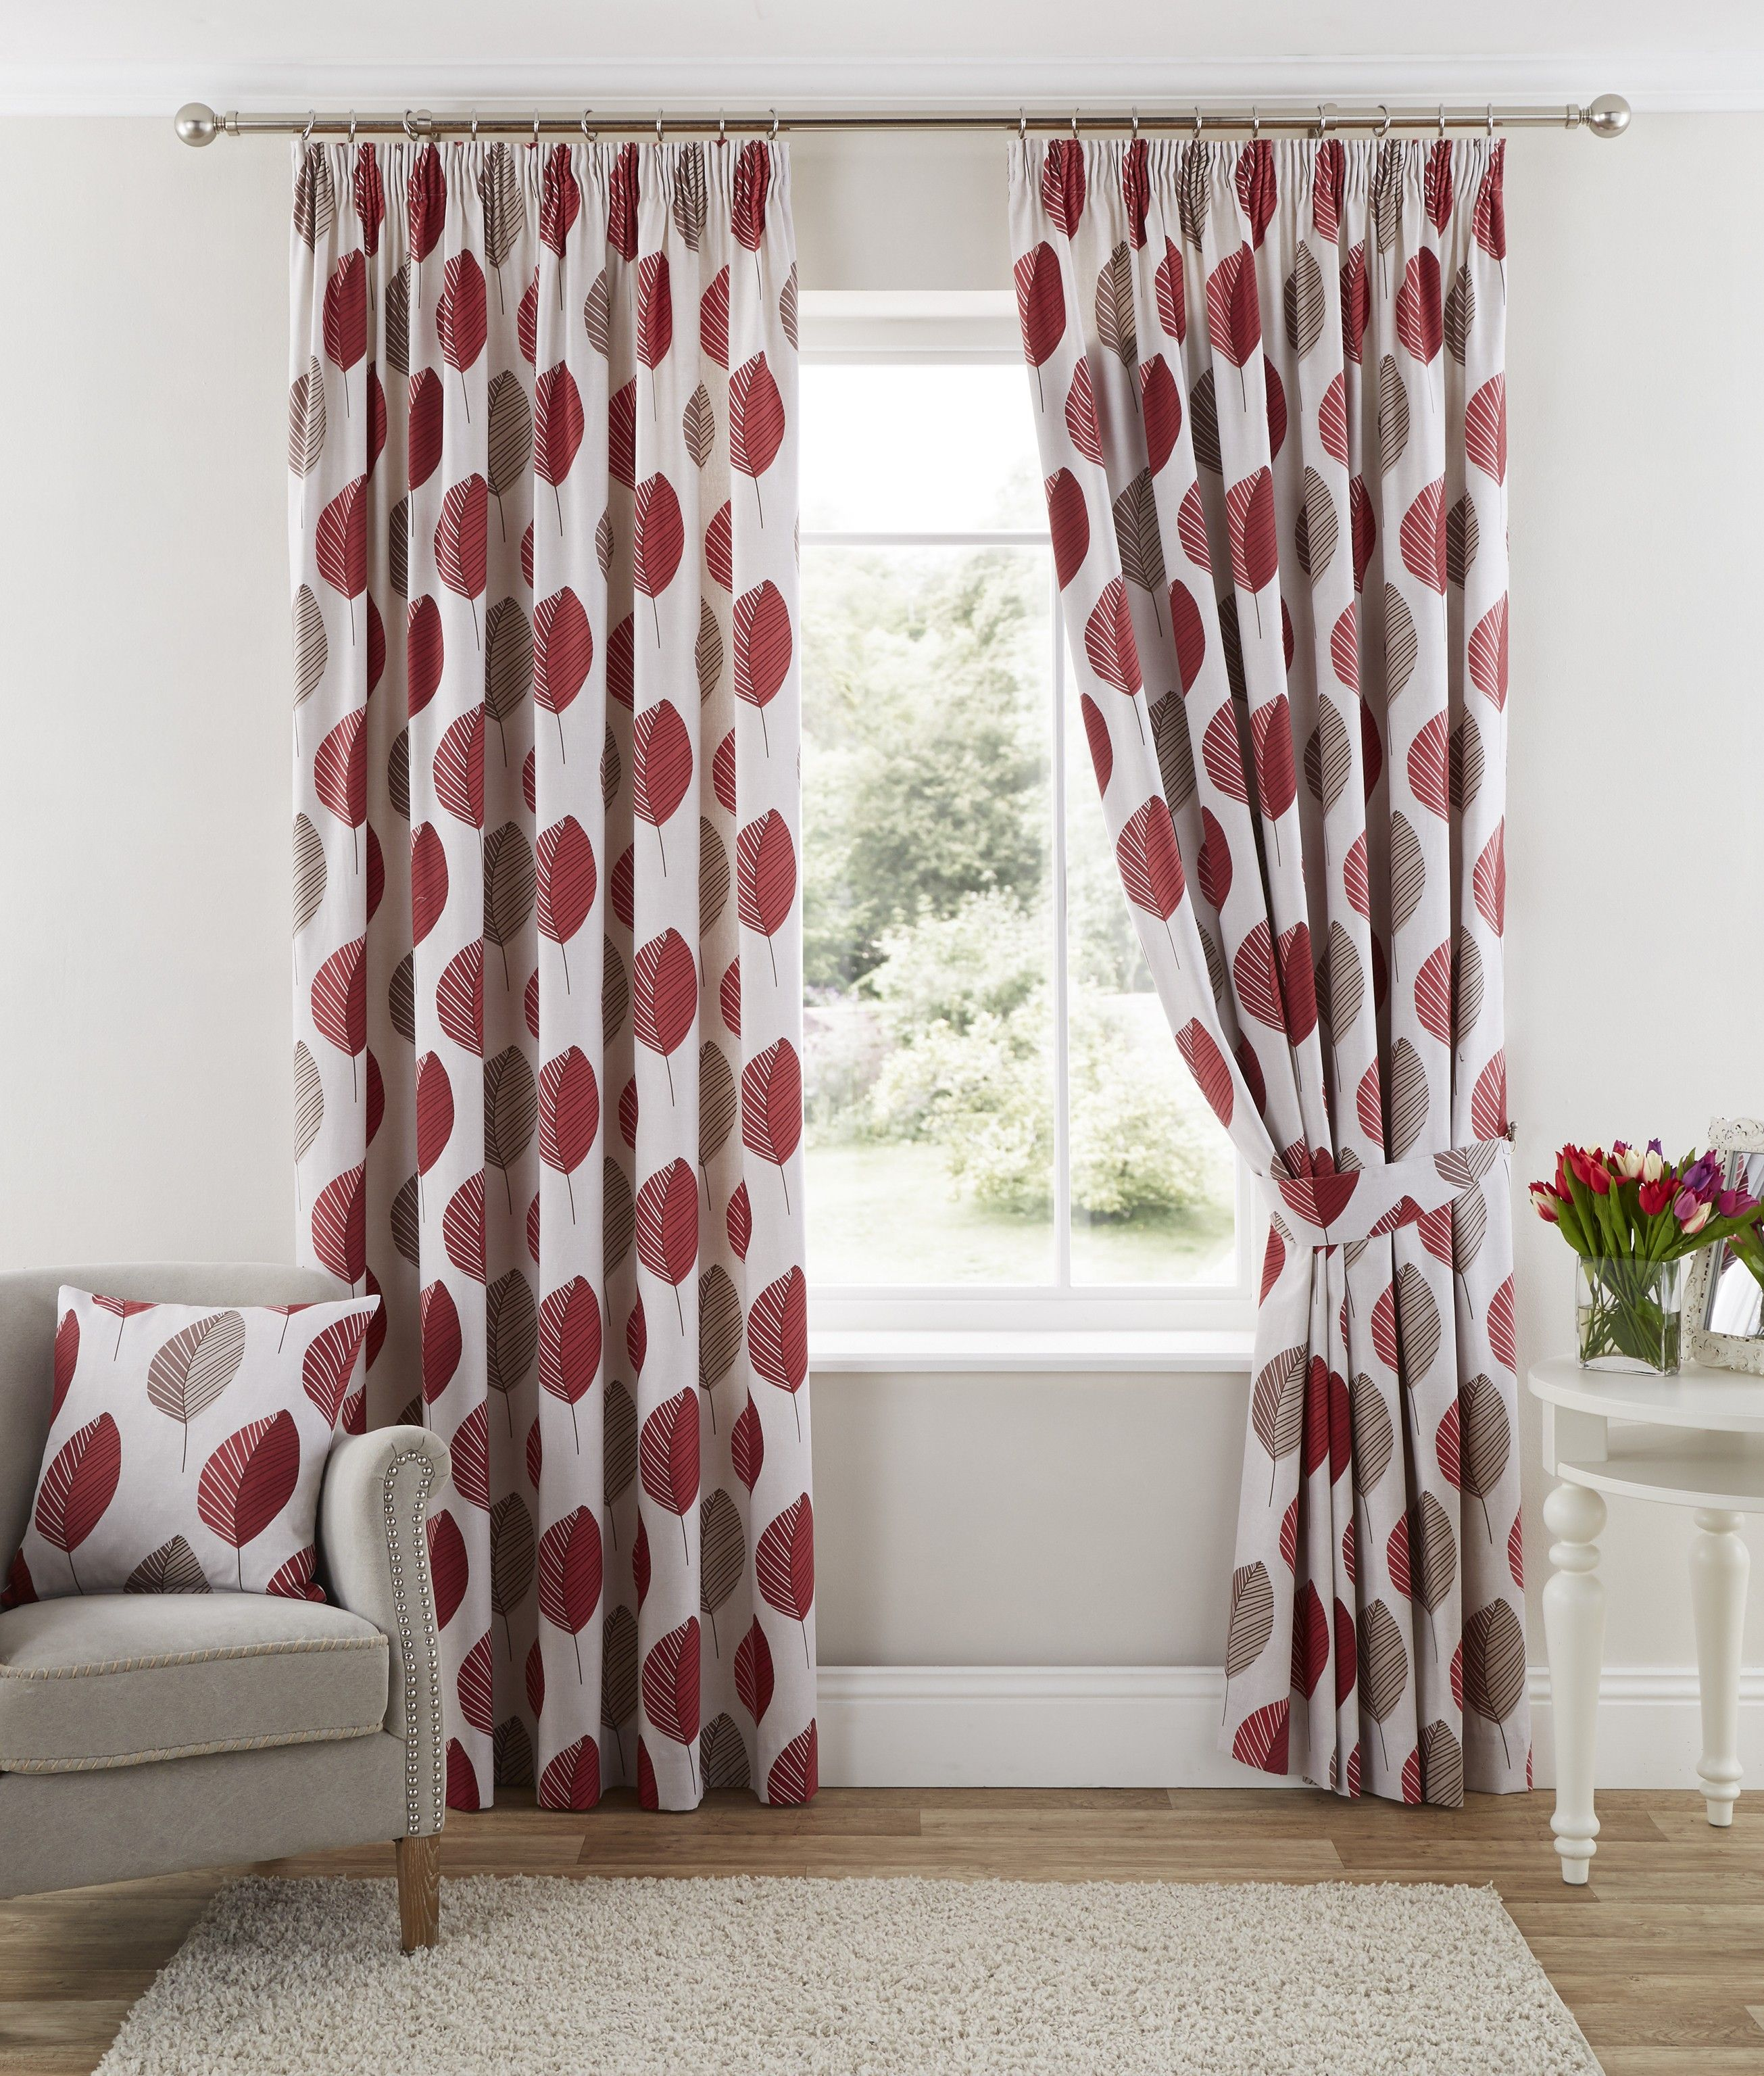 Arcadia Pencil Pleat Curtains Red | Ponden Homes